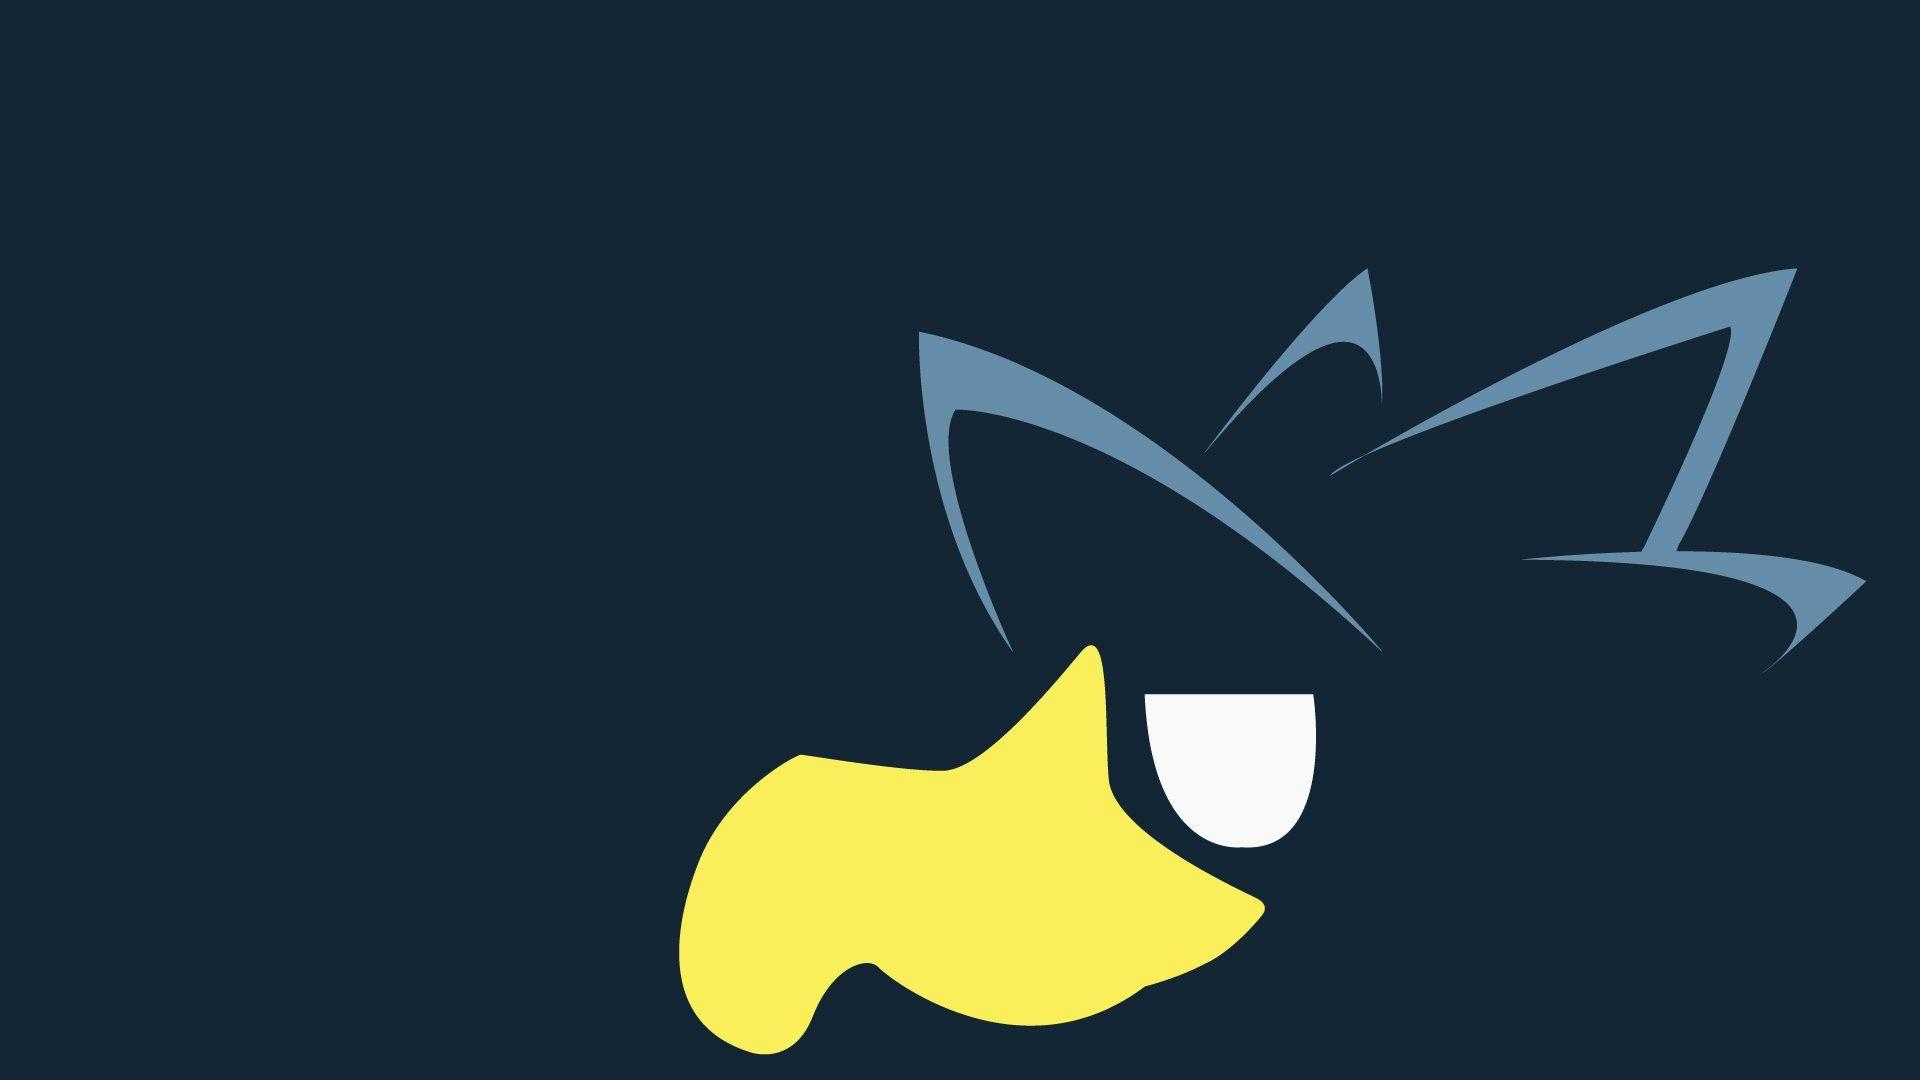 8 Murkrow (Pokémon) HD Wallpapers | Background Images - Wallpaper ...